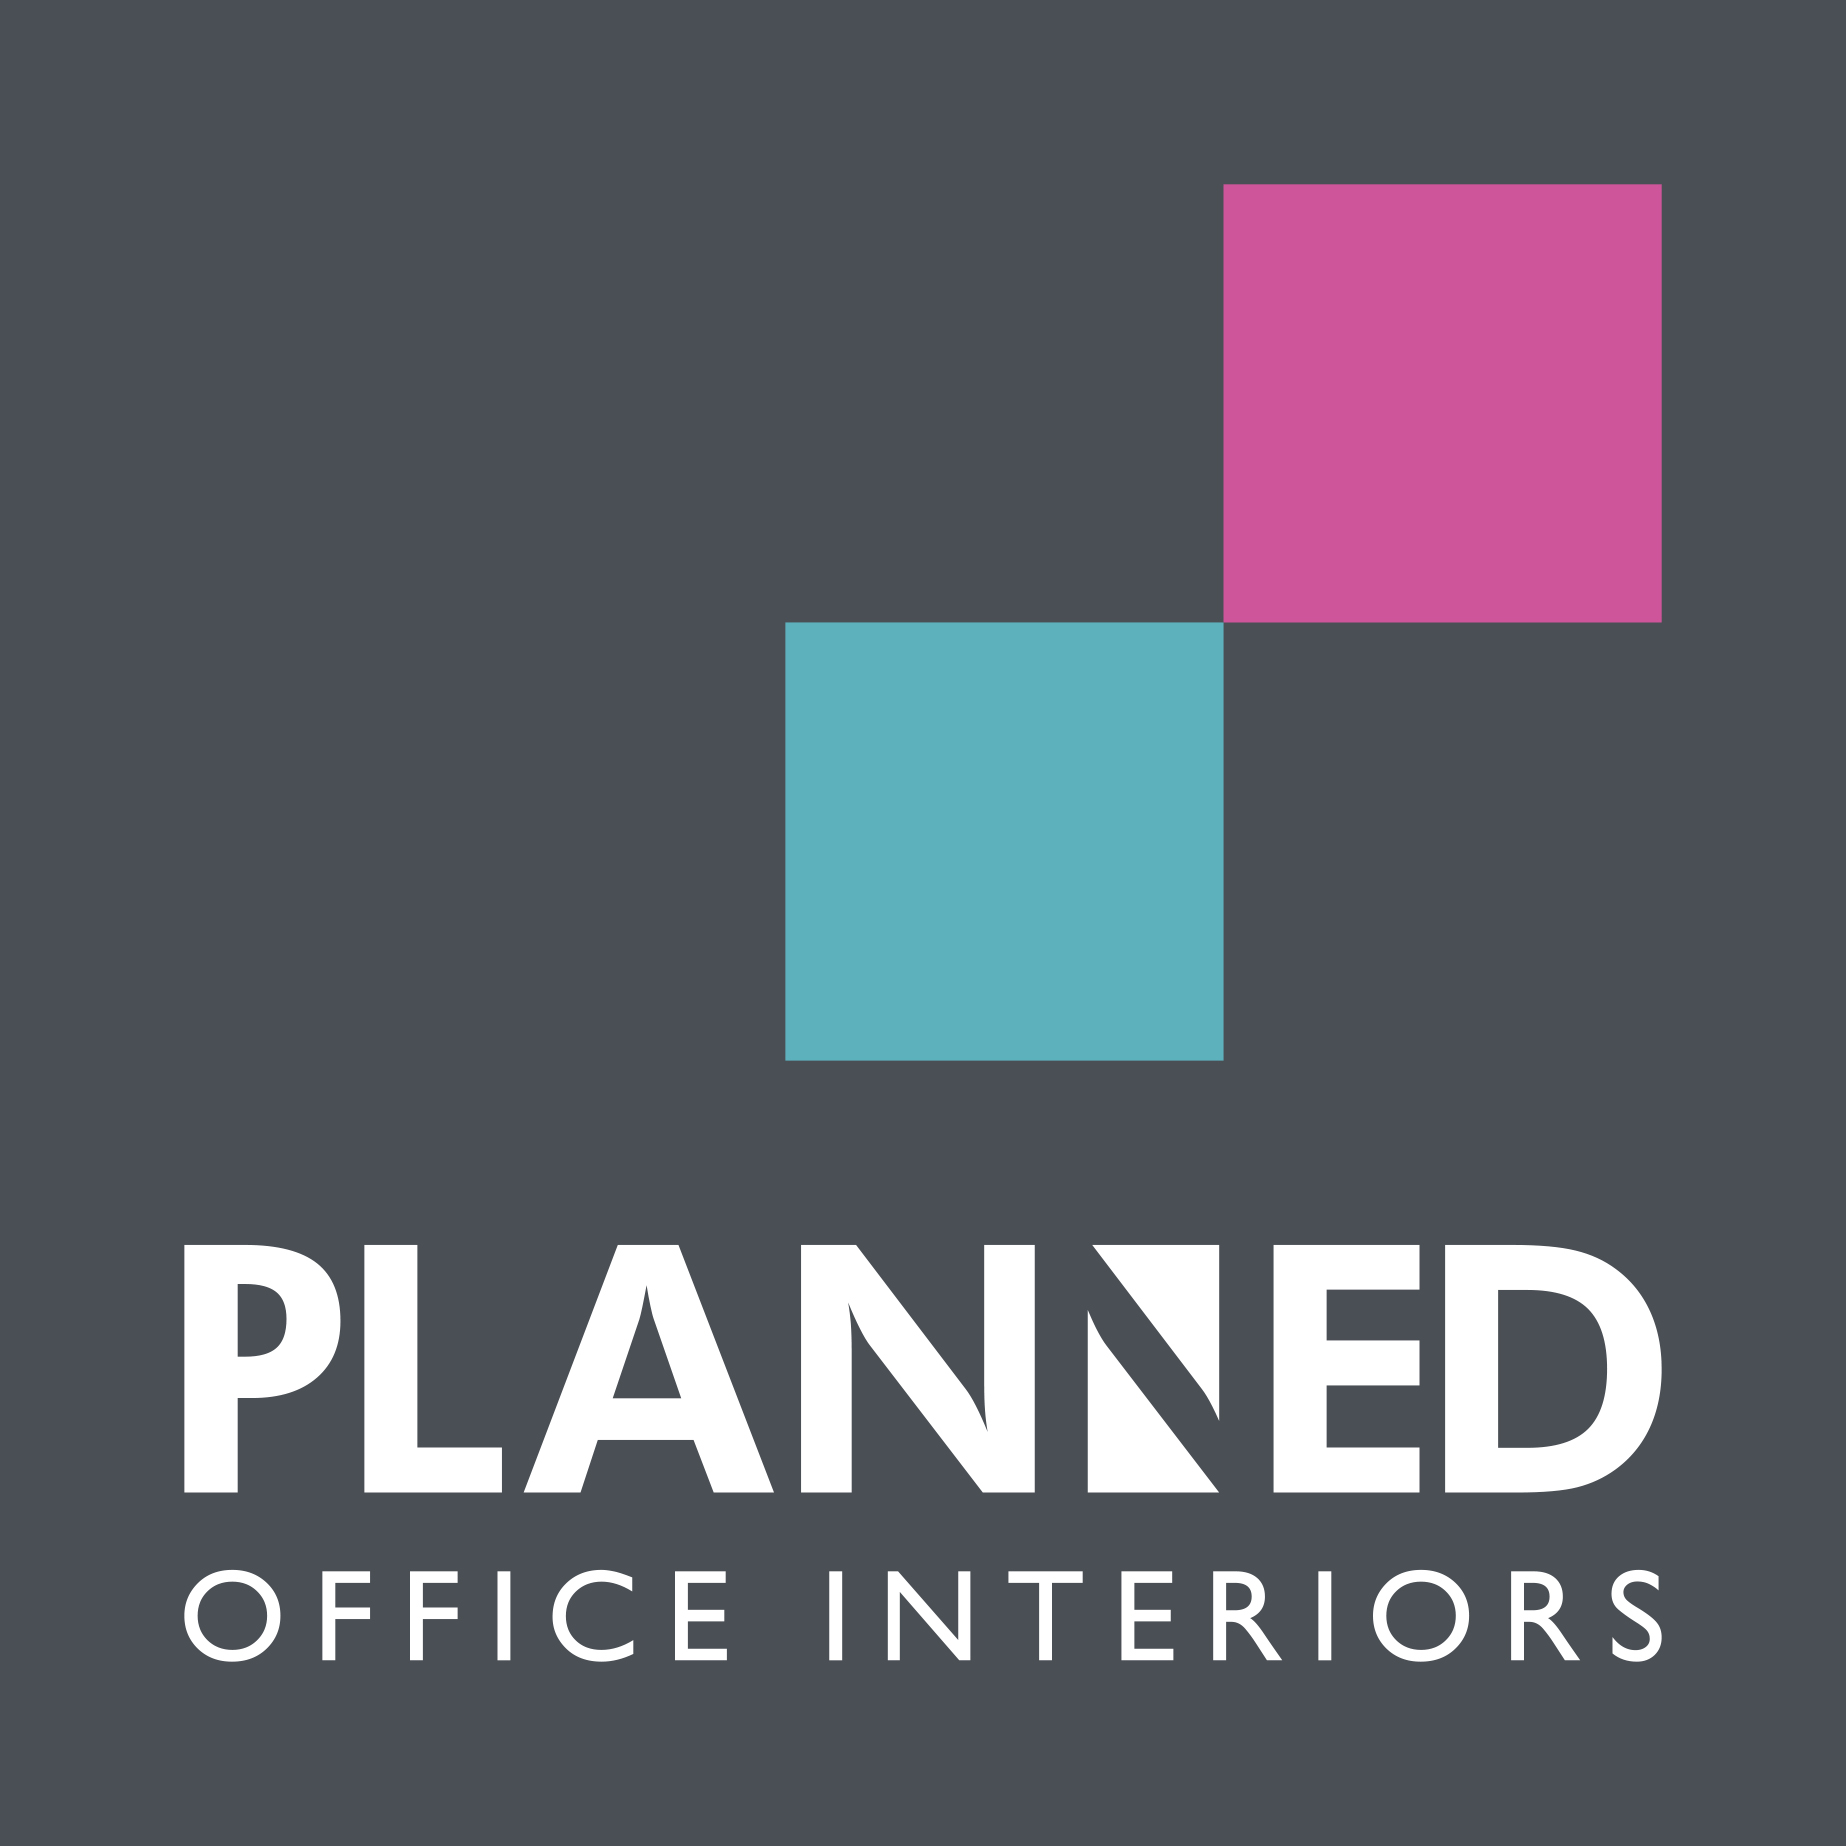 Planned Office Interiors